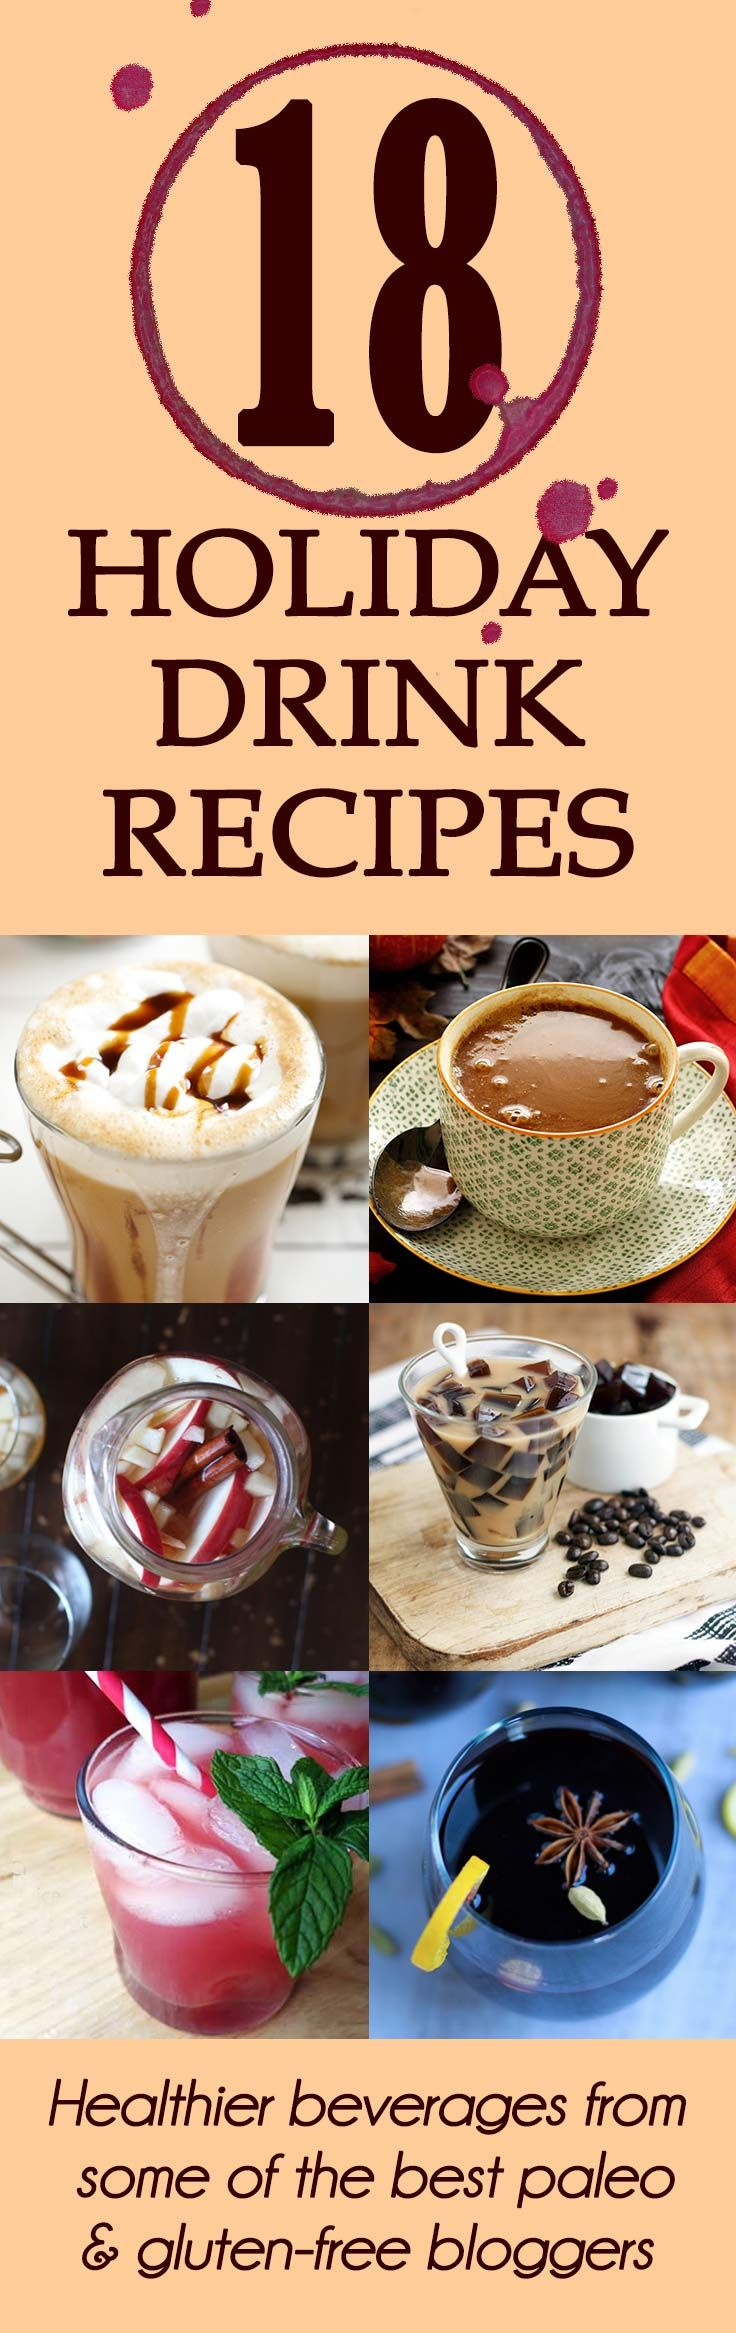 Here's to healthier holidays! Check out this great roundup of seasonal drinks from some of the best paleo/gluten-free food bloggers. Cheers!